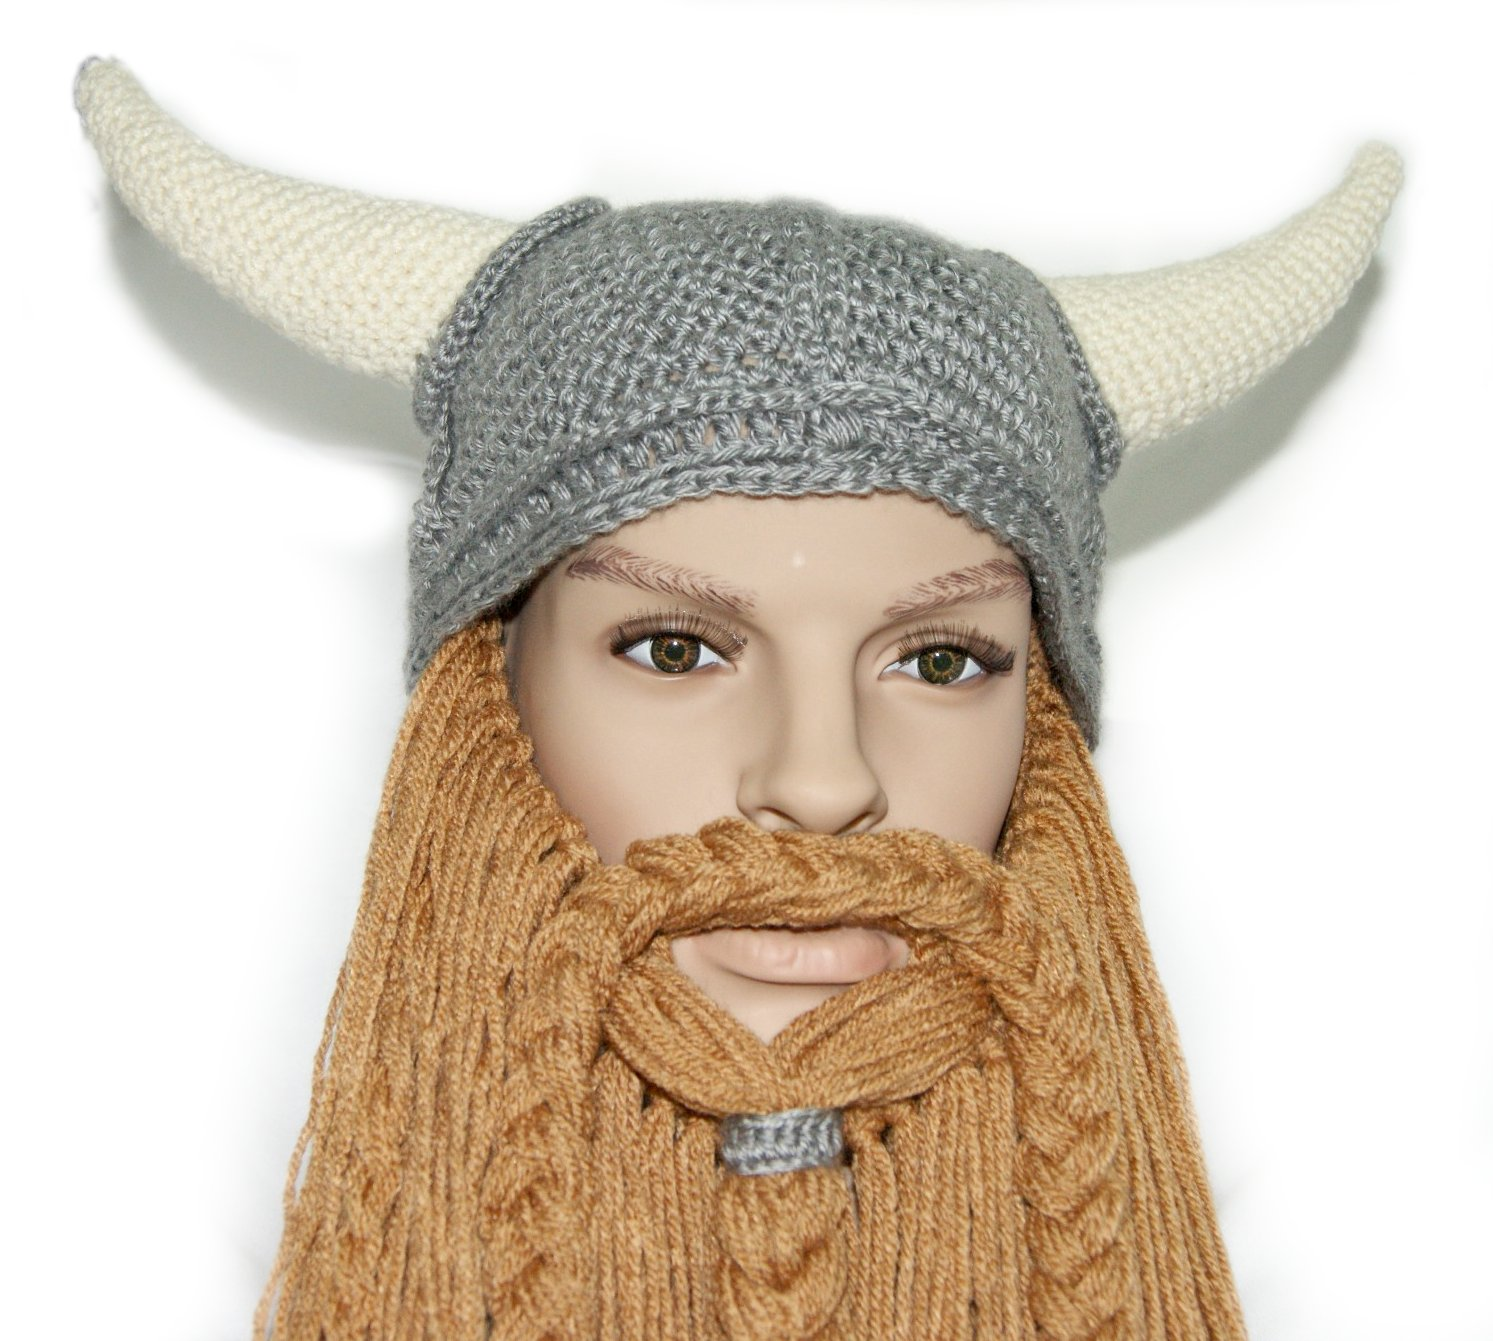 Free Crochet Patterns For Viking Hat : Crochet Beard Beanie Pattern Free - Viewing Gallery